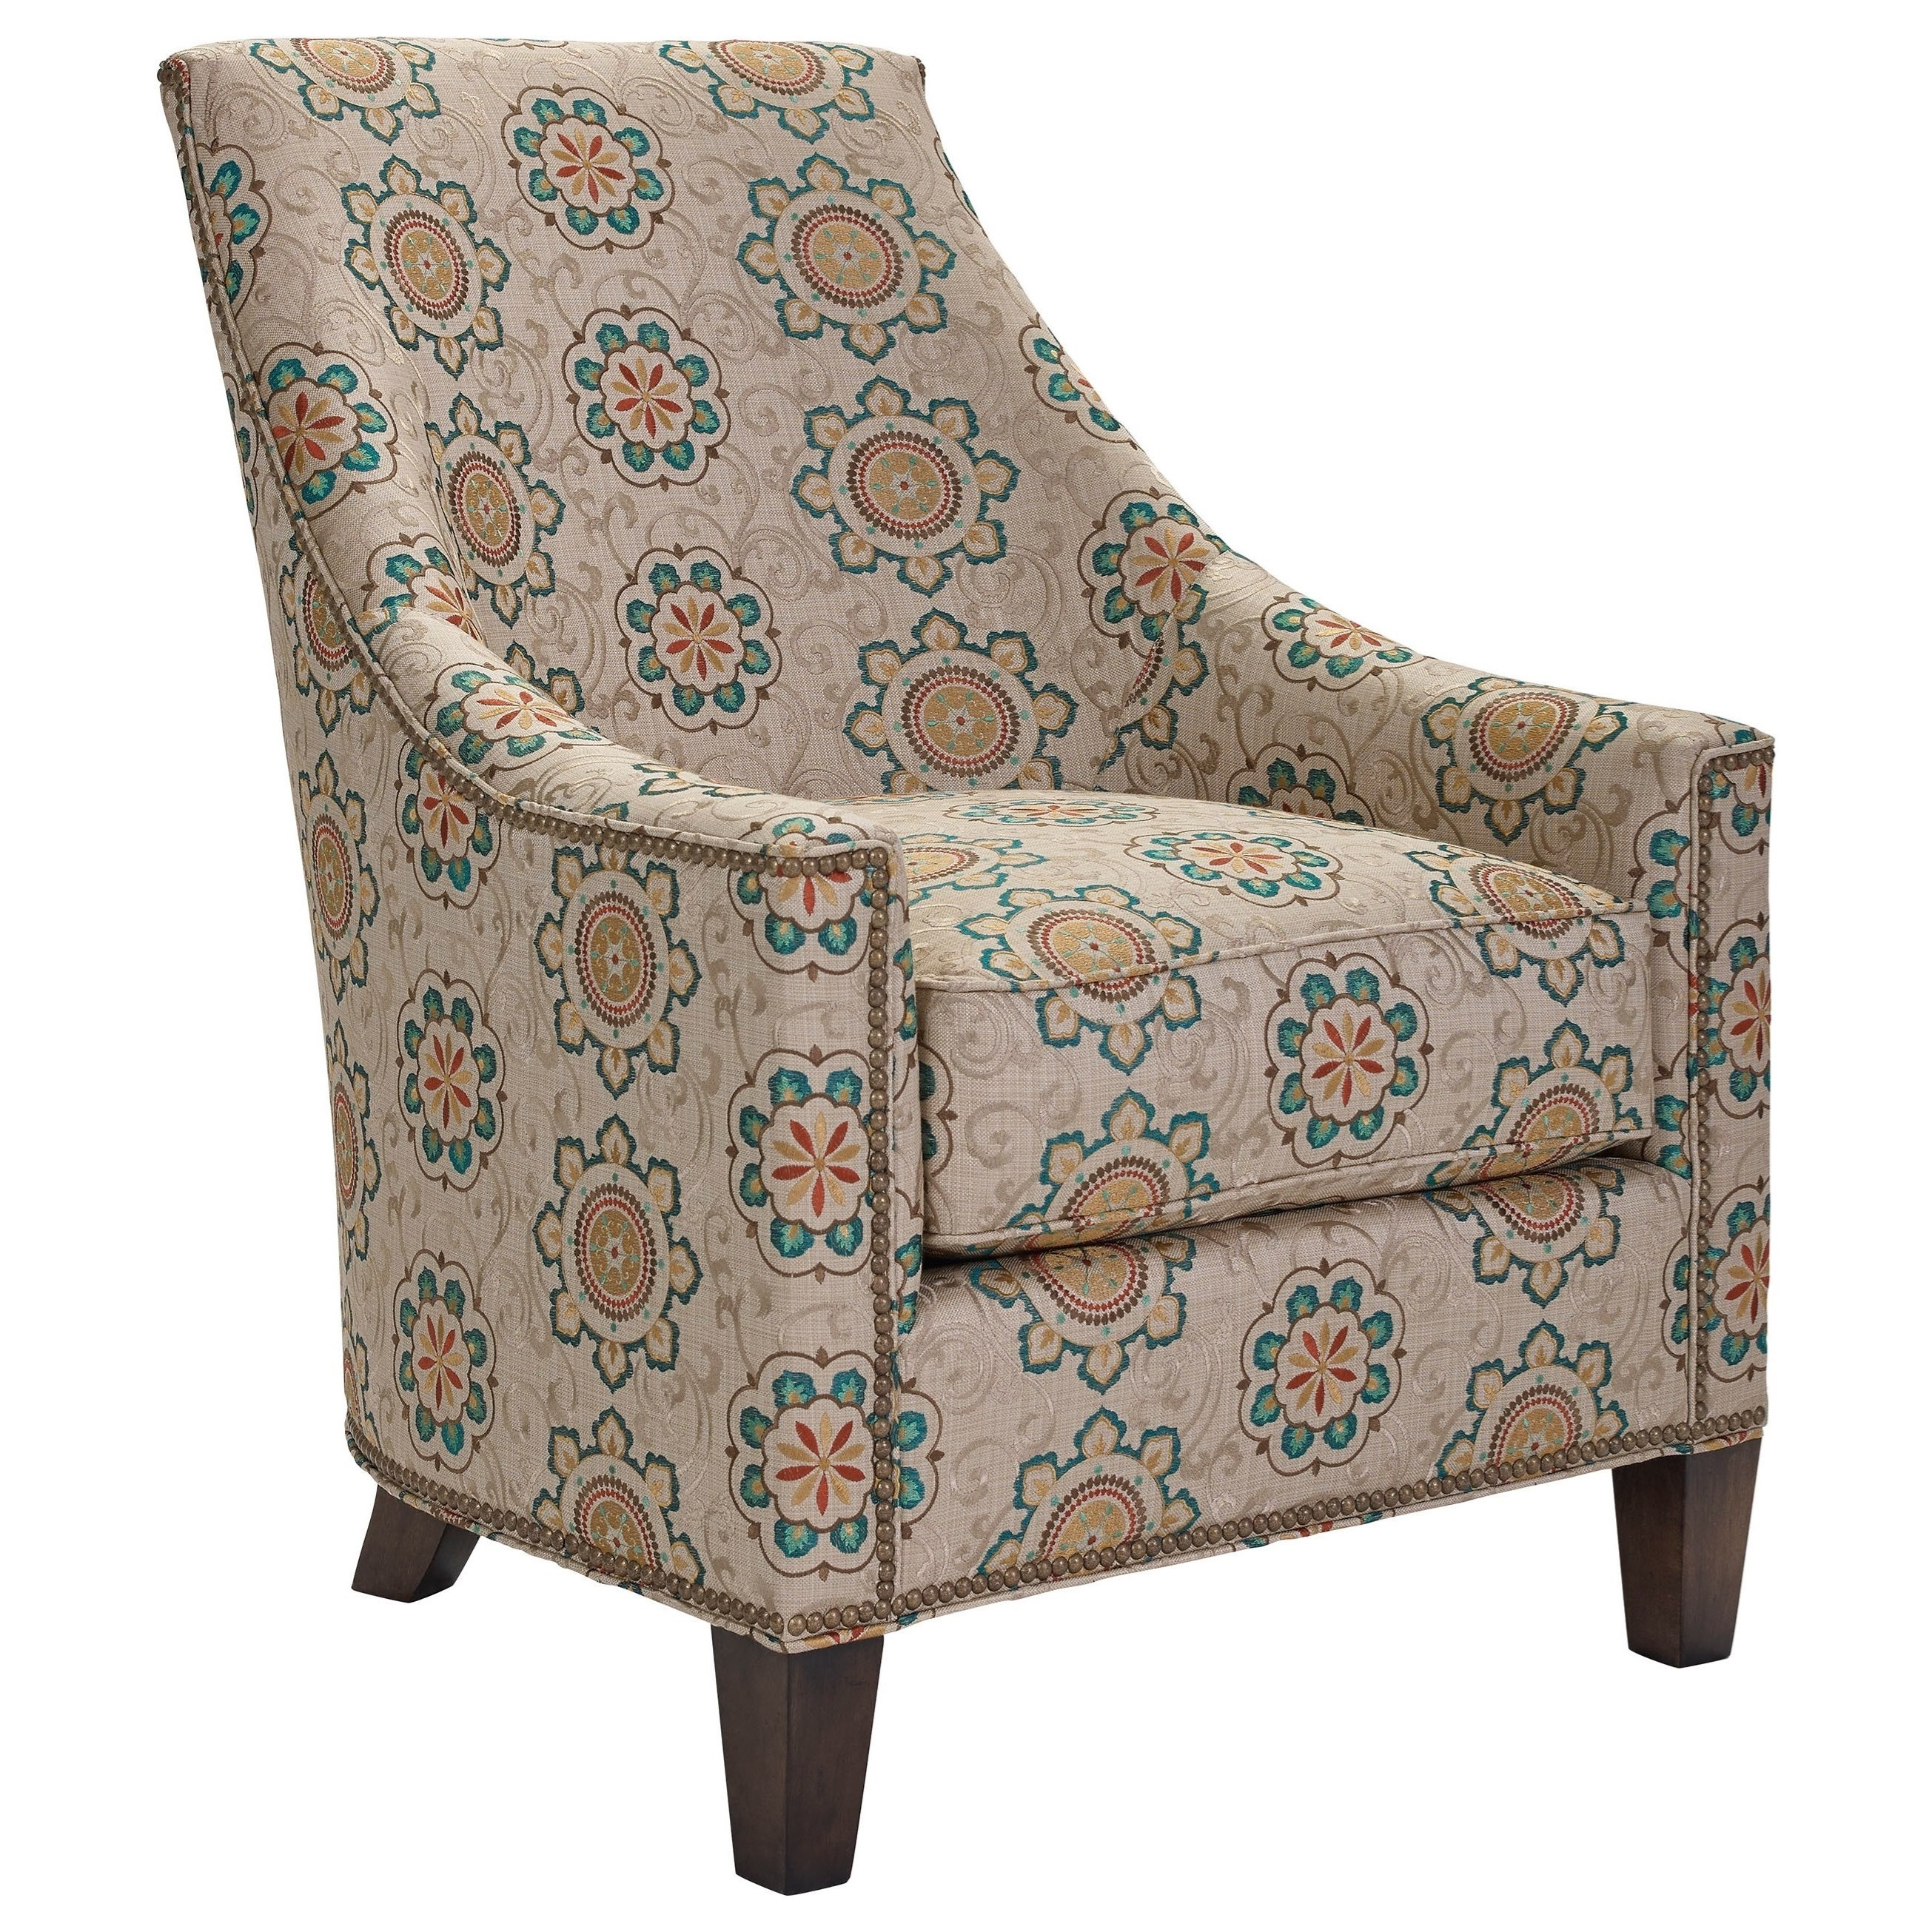 Thomasville® Upholstered Chairs And OttomansAdriana Chair ...